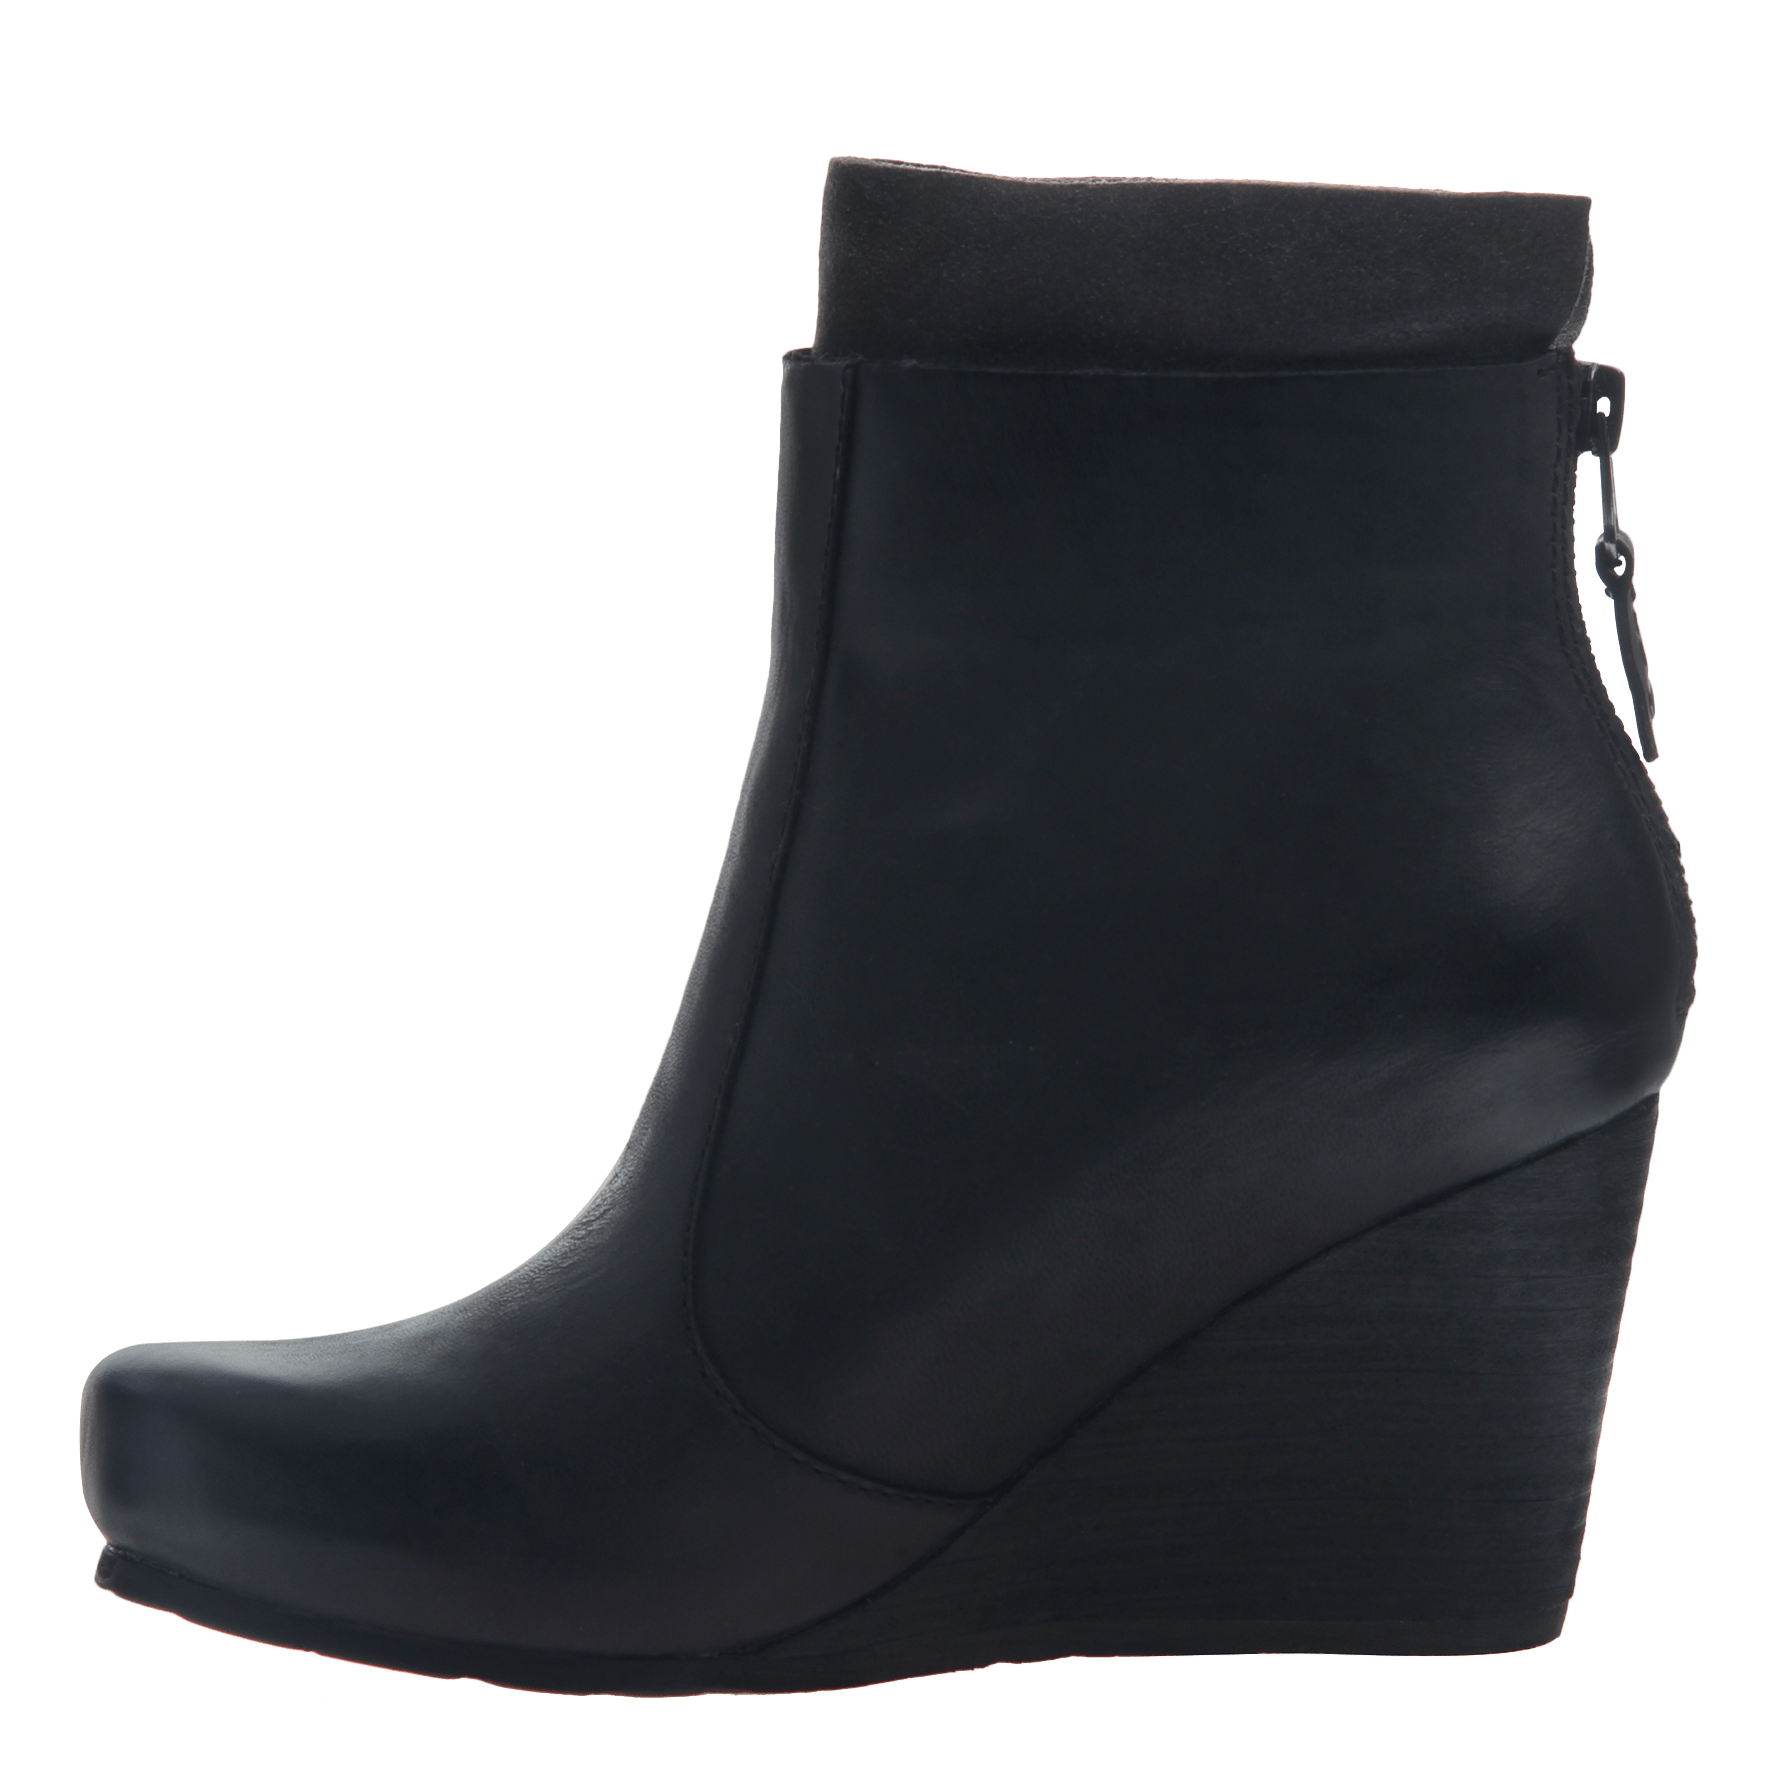 Women s wedge ankle bootie the vagary in black inside view bab8808cf